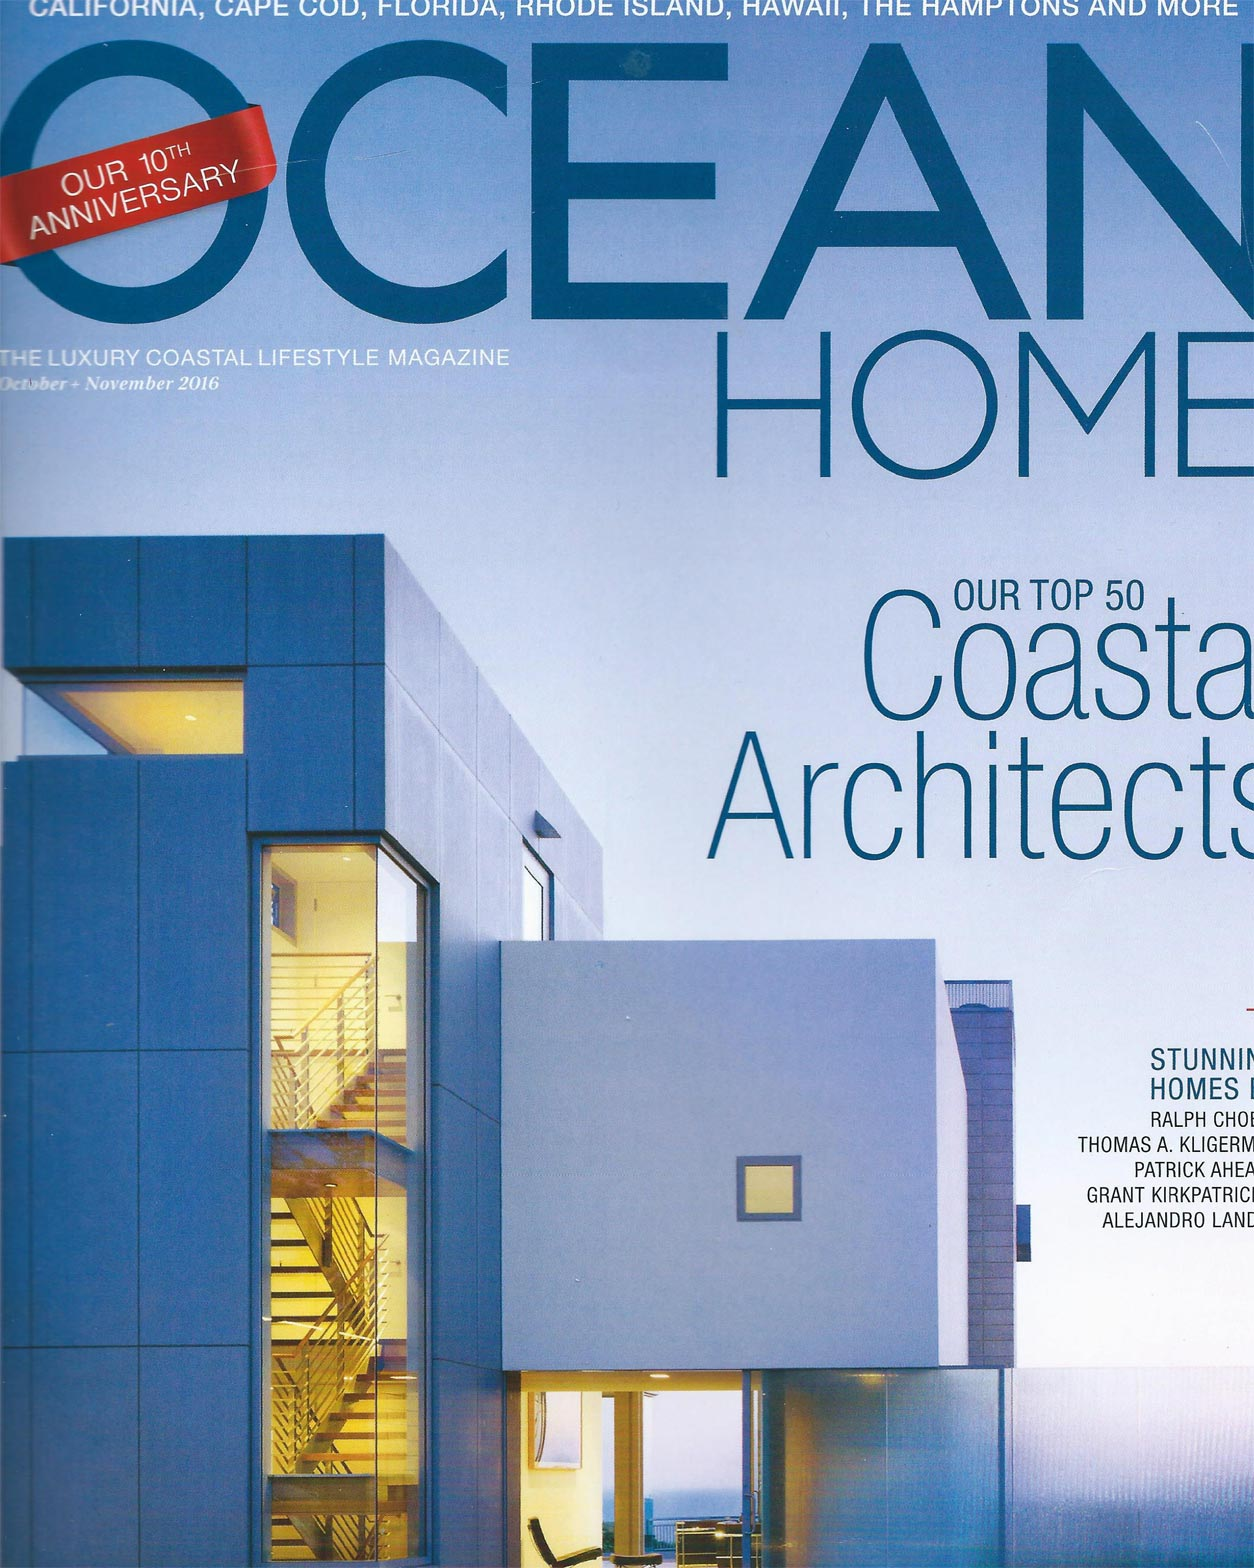 Ocean Home, Fall 2016, 1 of 2